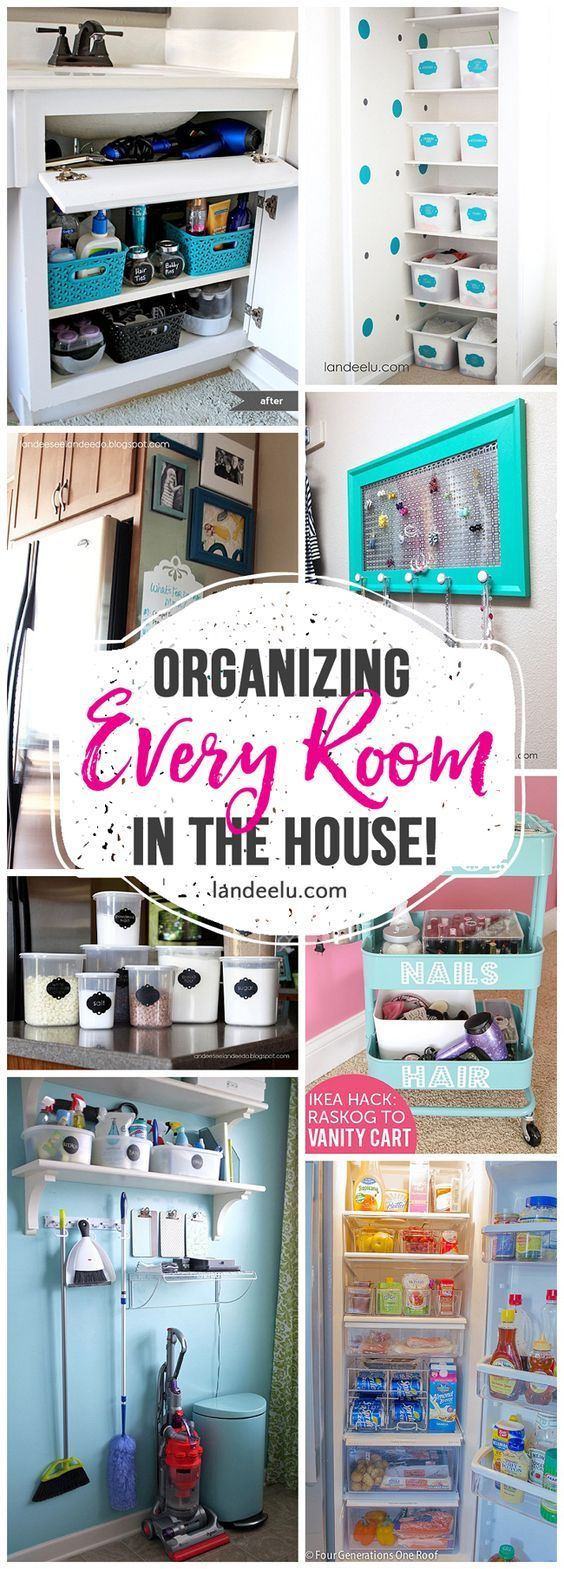 How to Organize Every Room in the House! Tons of great and inexpensive ideas to organize every nook and cranny of your house!  I always LOVE organization ideas!